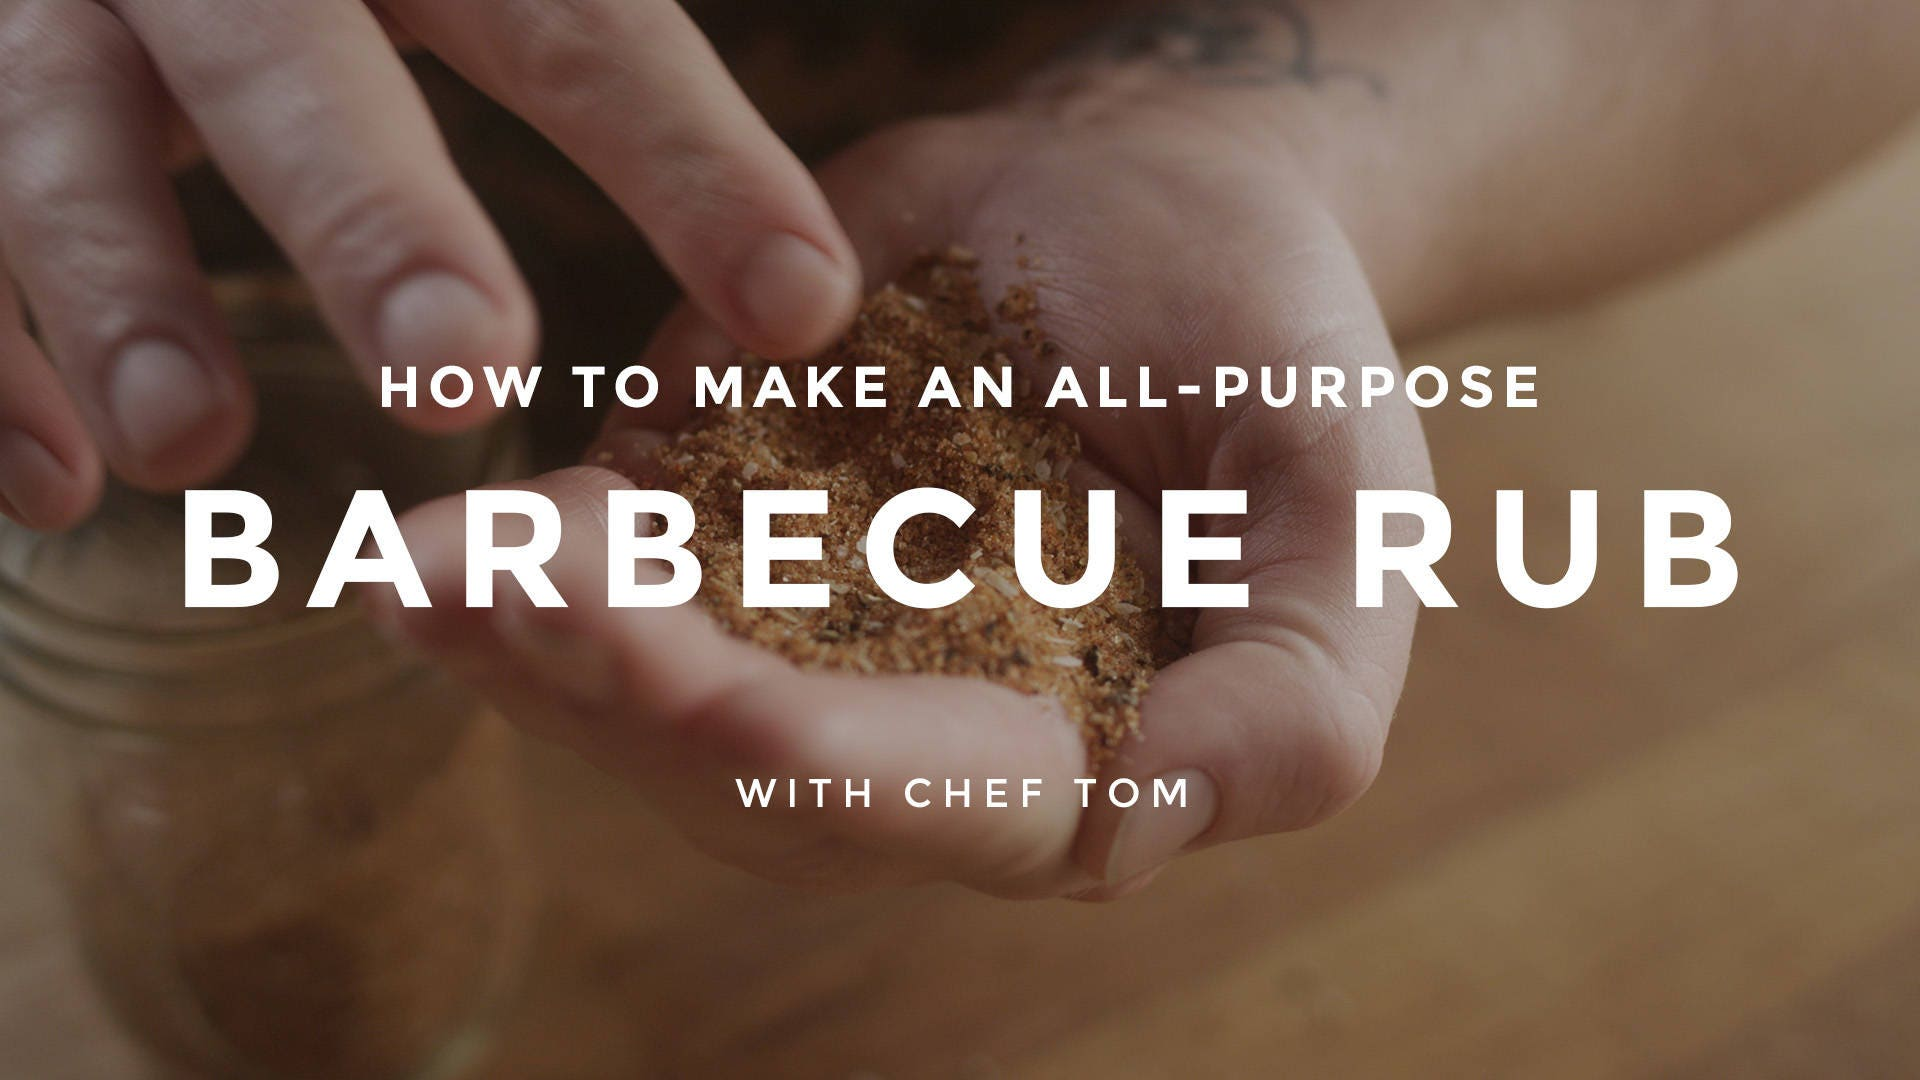 How to Make an All Purpose Barbecue Rub